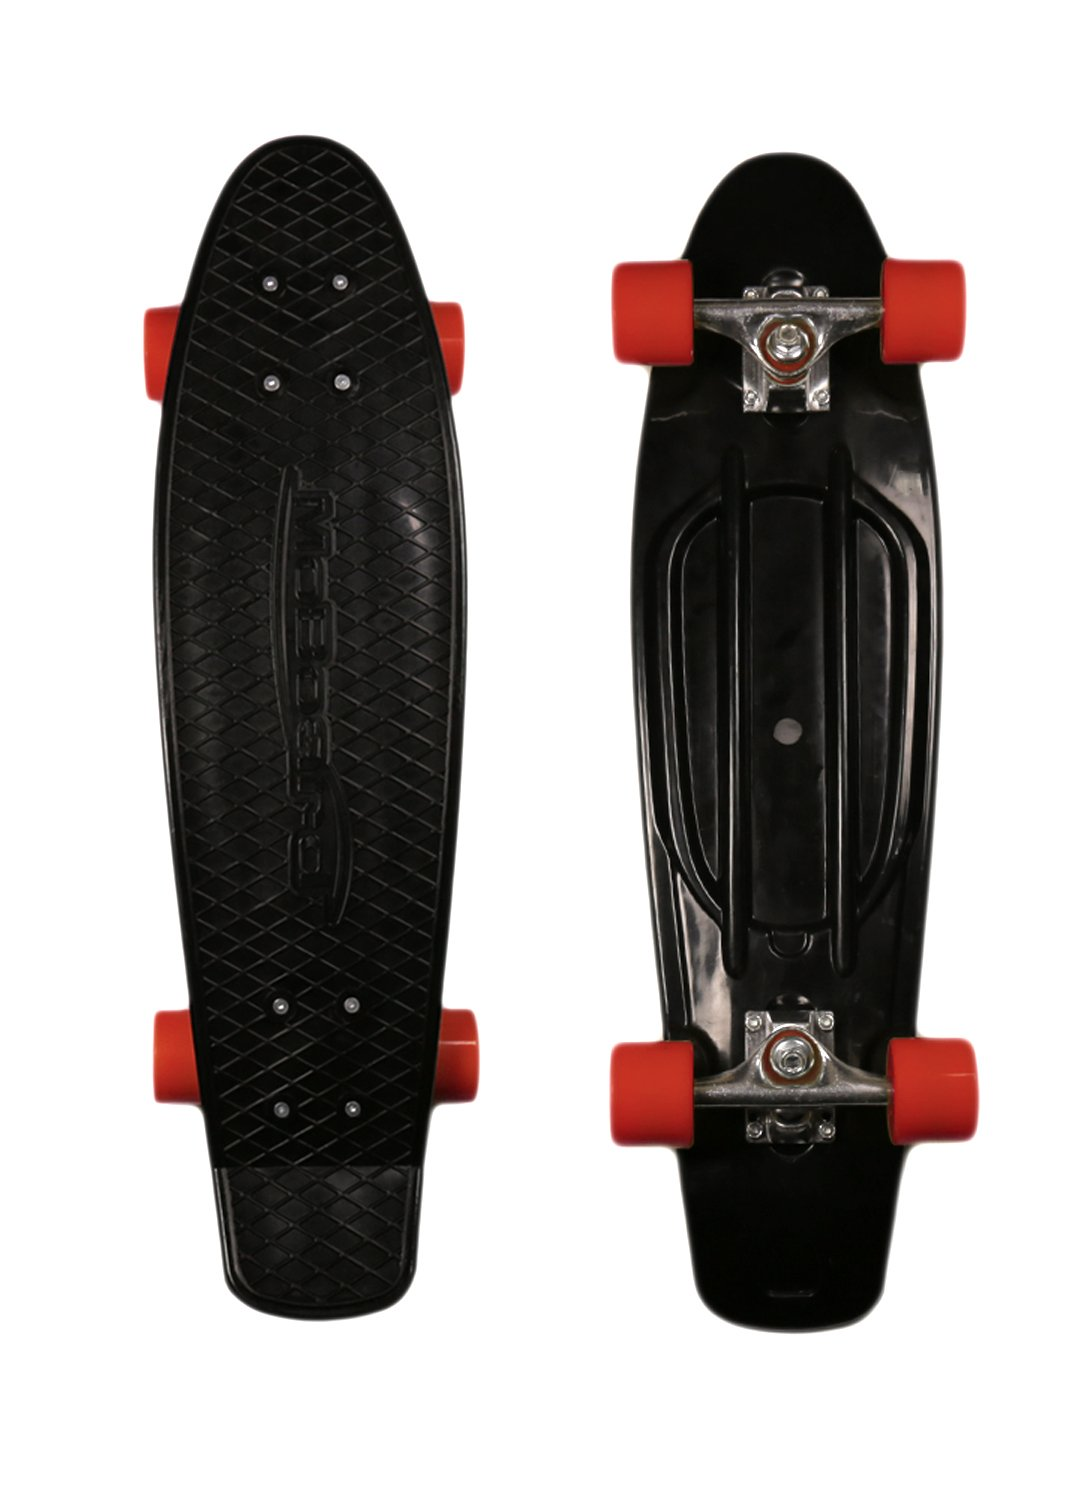 MoBoard 22'' Vintage Style Graphic Complete Skateboard, Black/Red